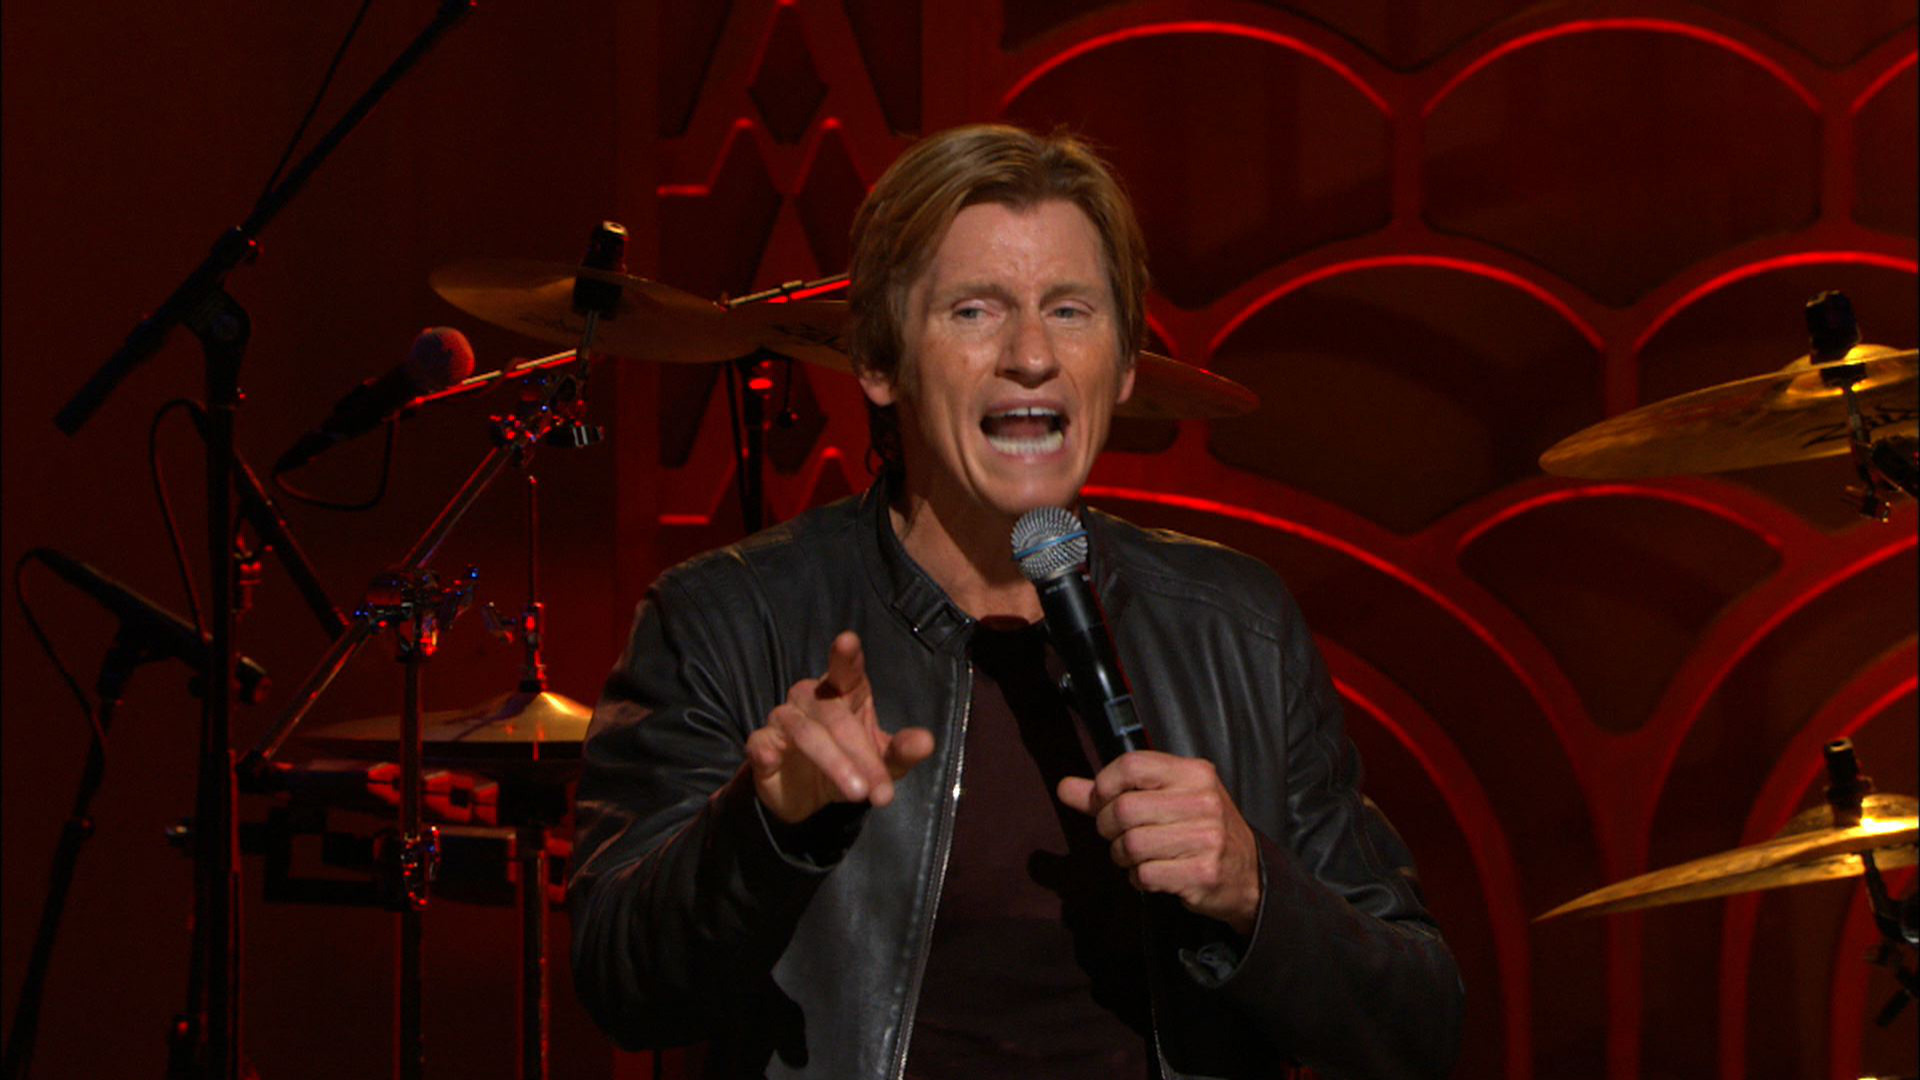 Denis Leary - Anal Leakage